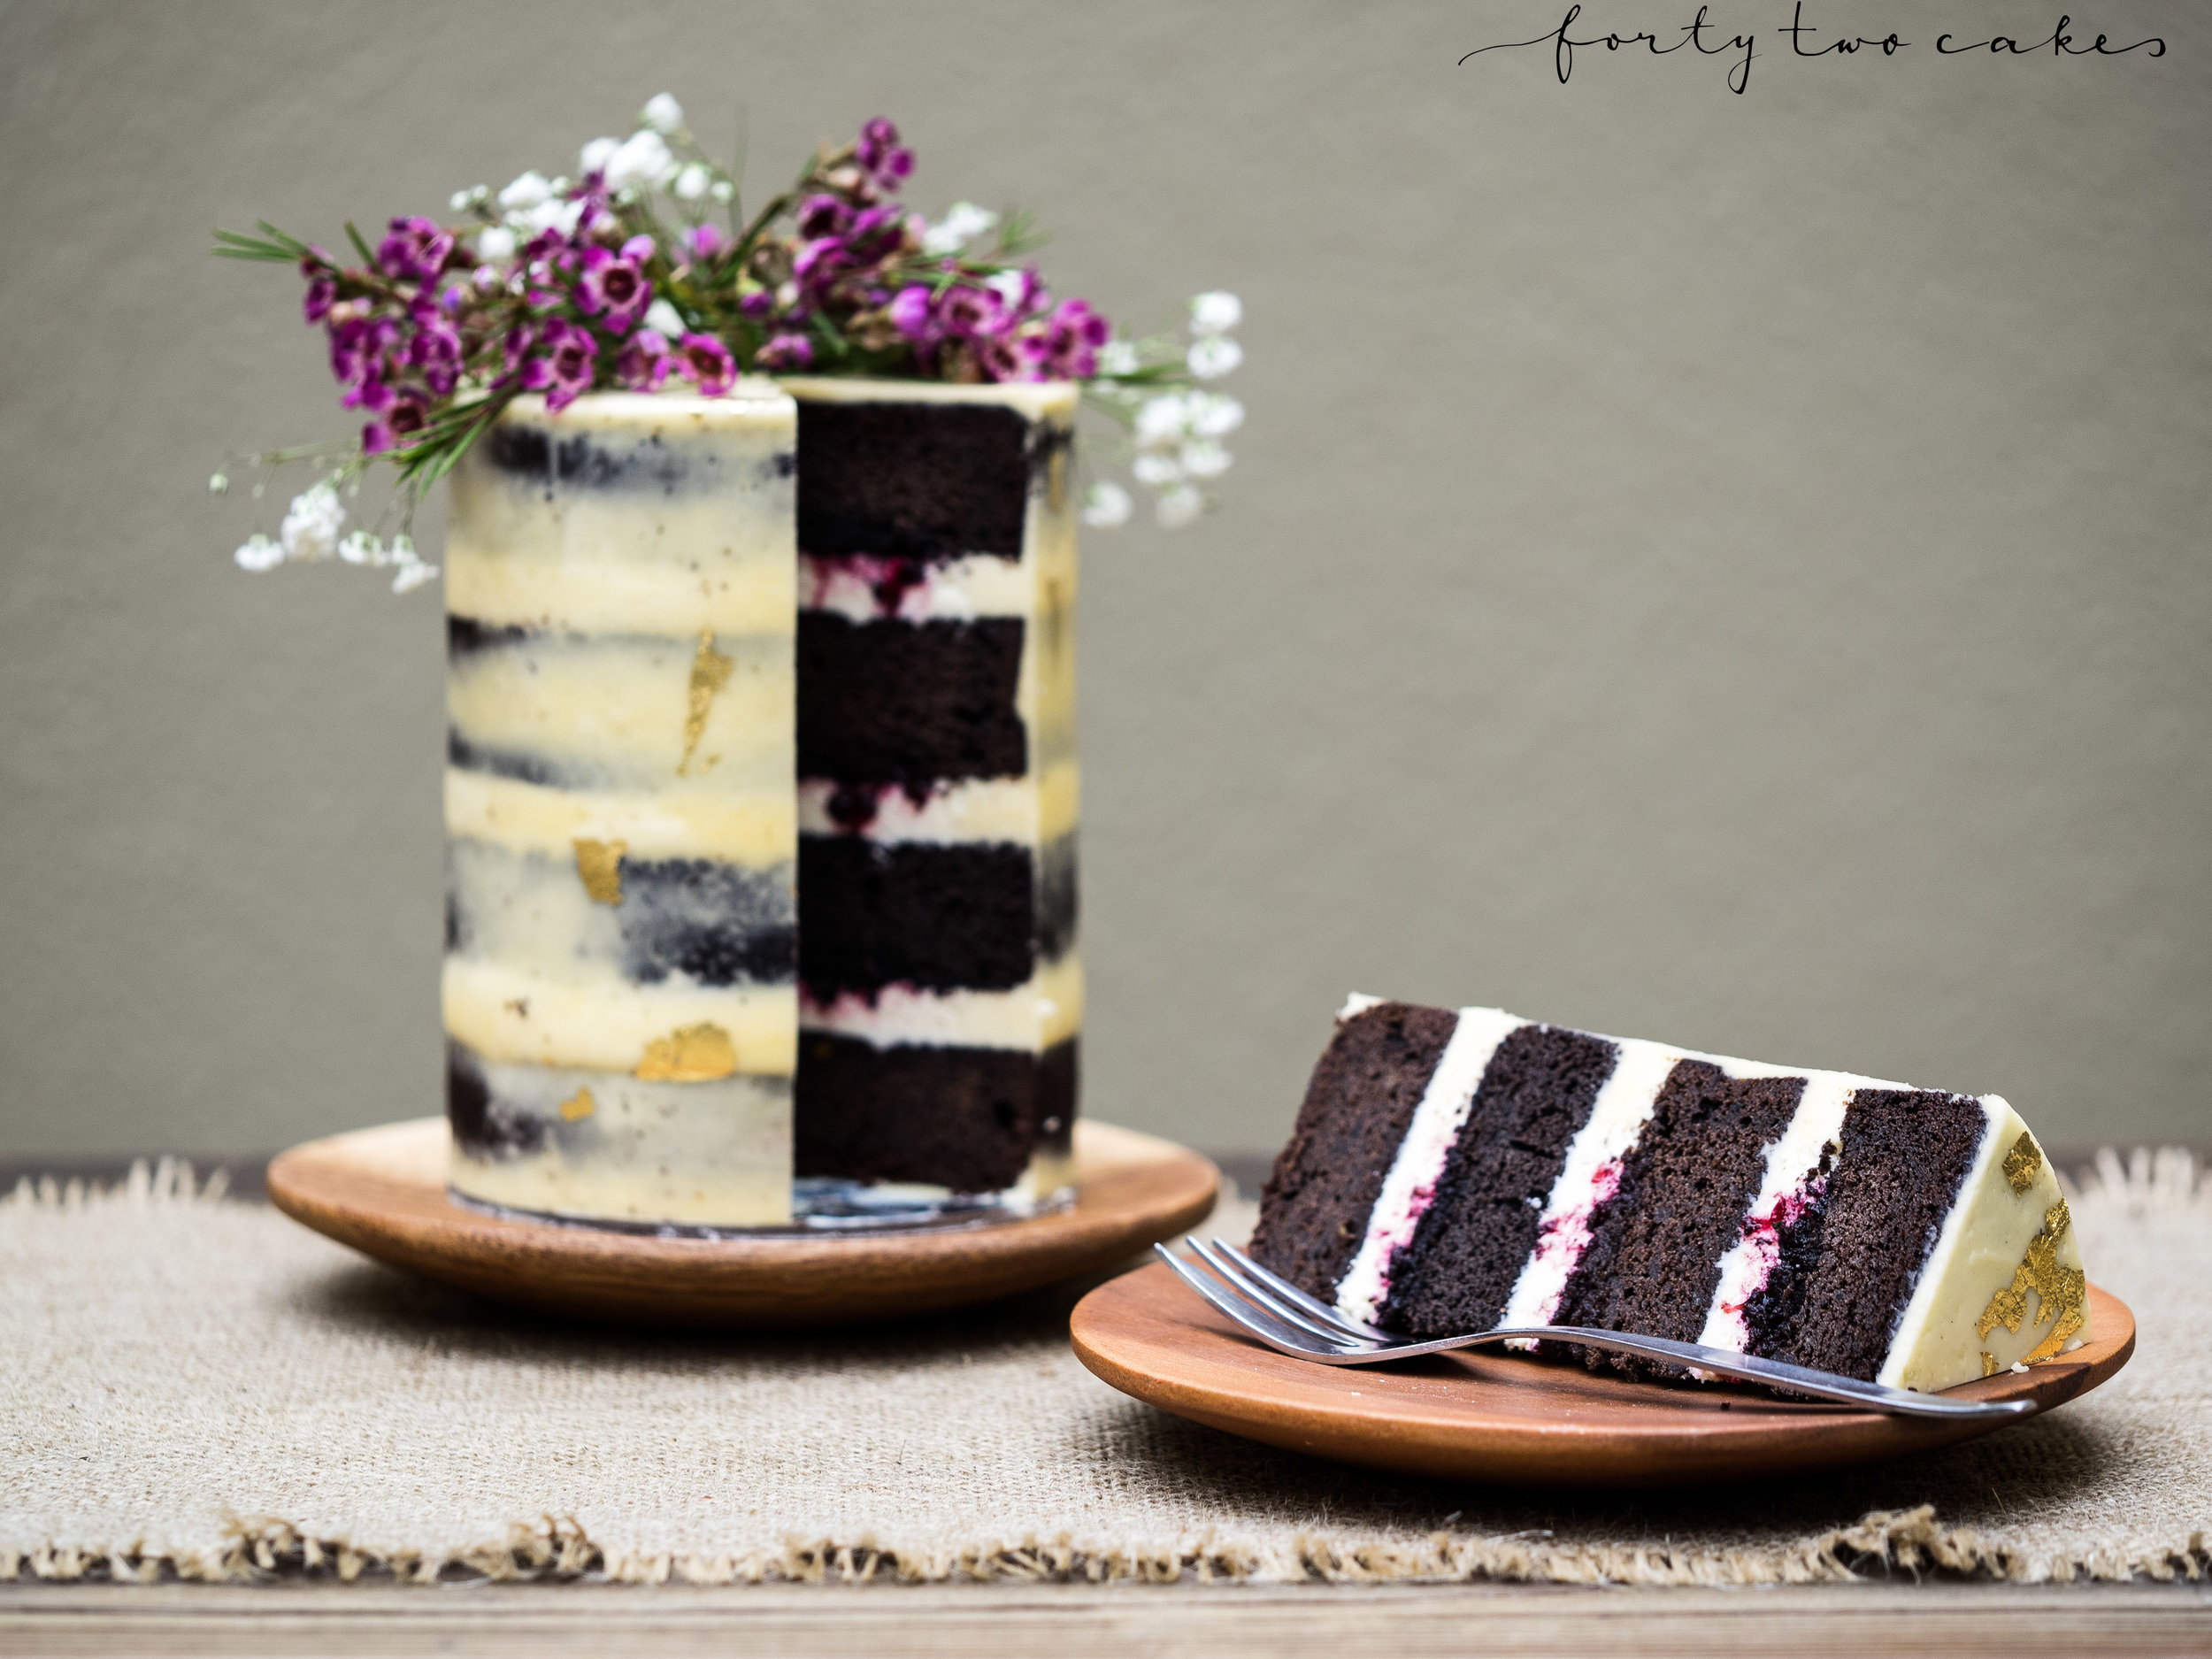 Forty-Two Cakes - Seminaked-07-2.jpg